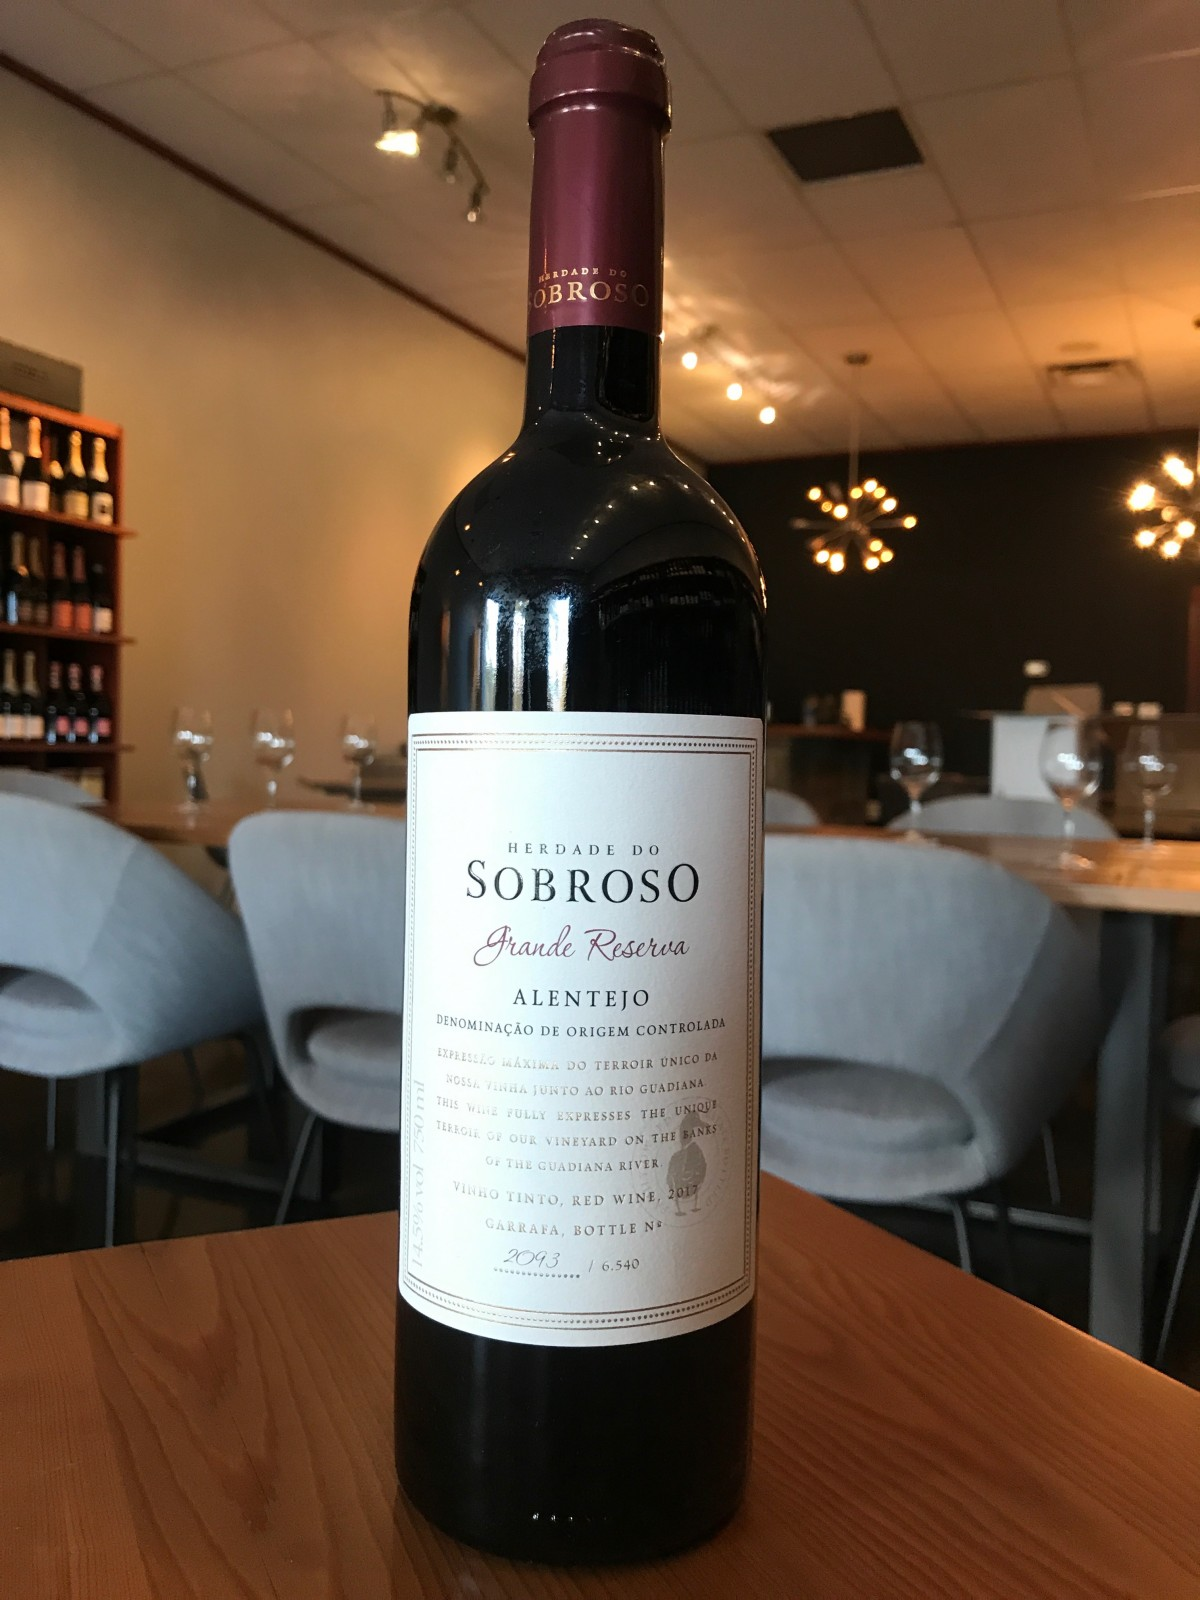 Herdade do Sobroso Grande Reserva Red Alentejo 2017 - TINTO Wine and Cheese